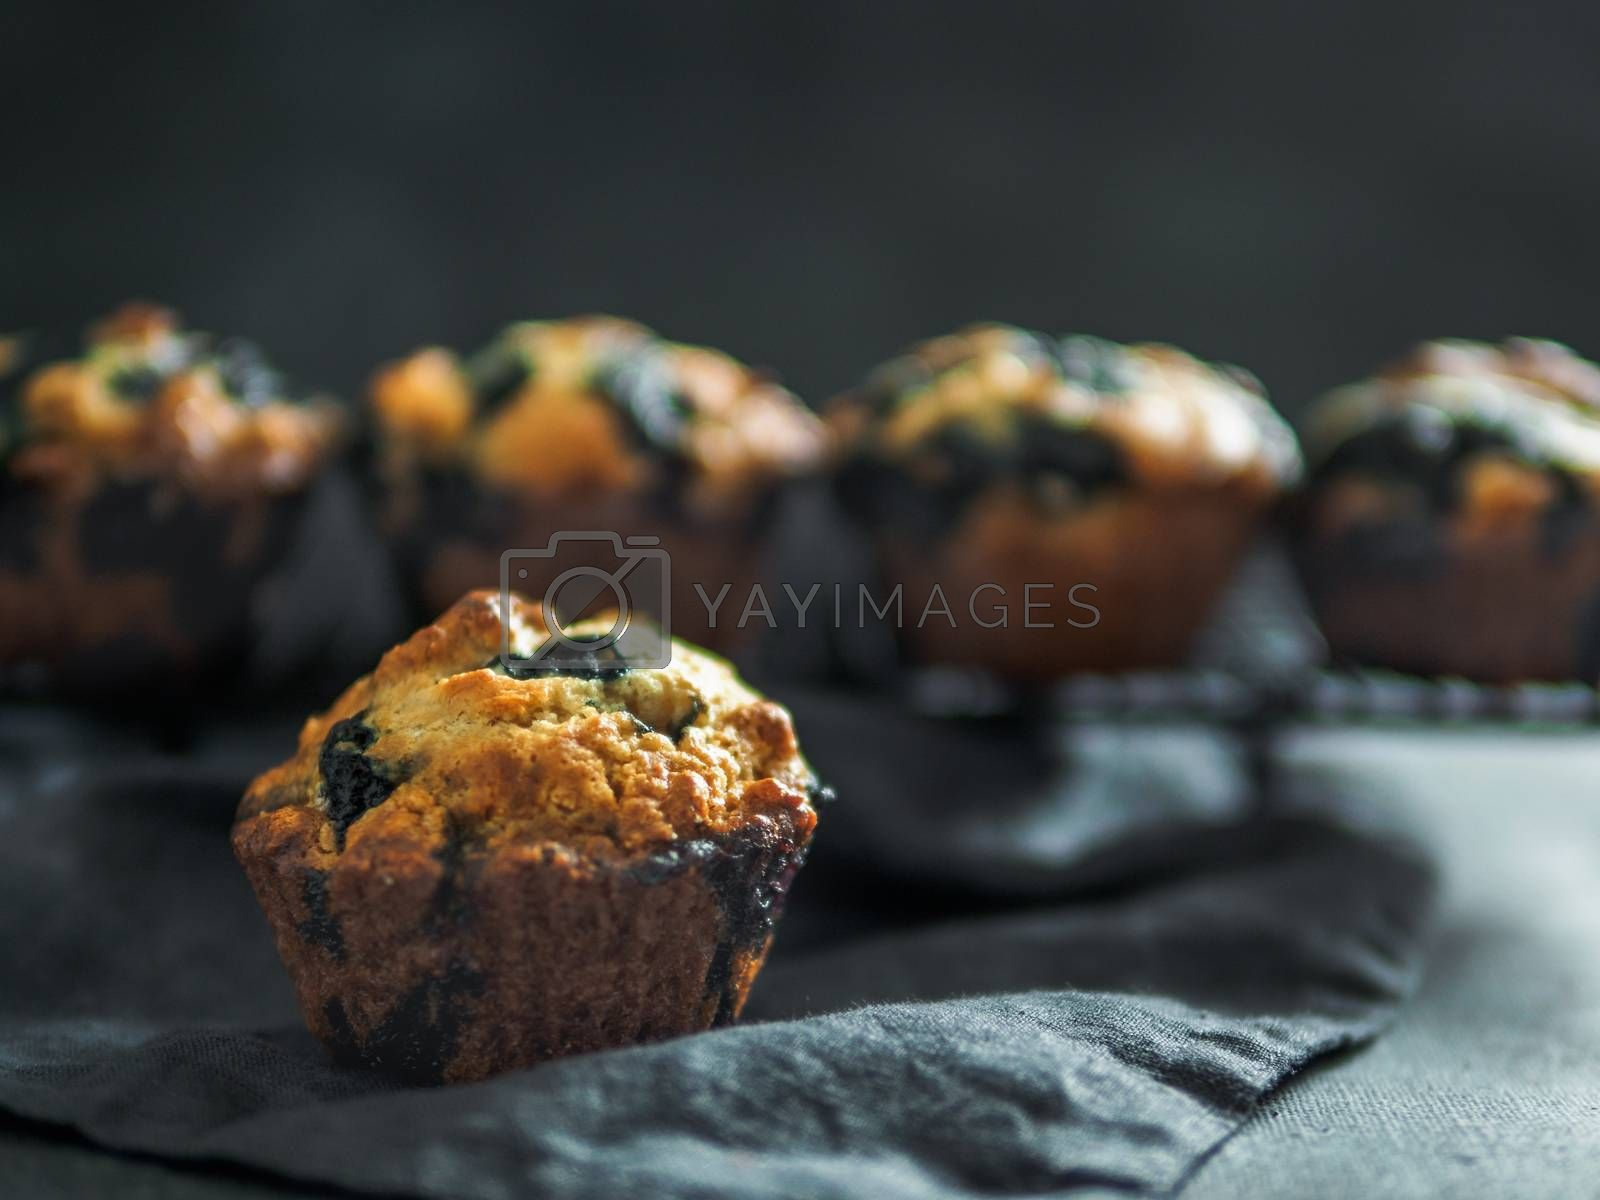 Homemade vegan blueberry muffins on dark background. Copy space for text or design. Low key